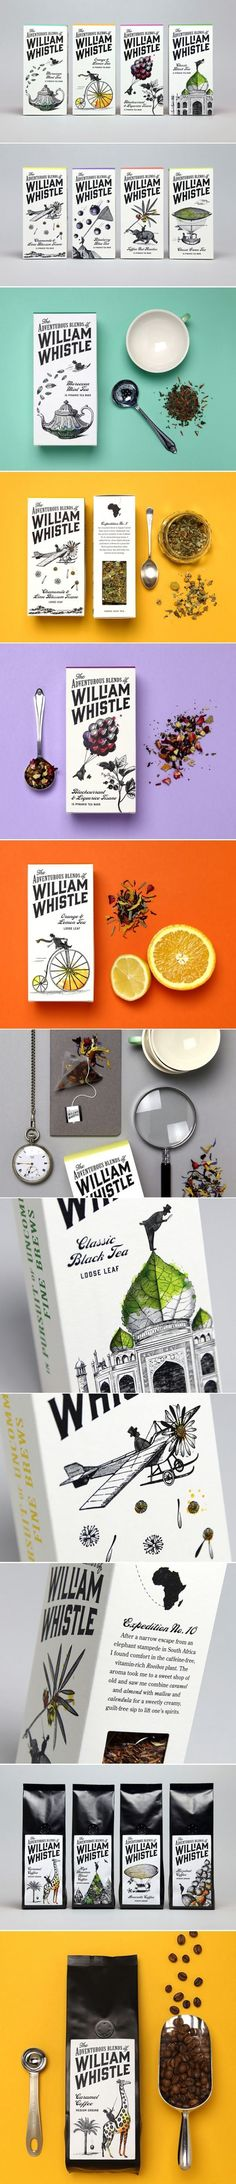 Beautifully Victorian-esque packaging -- yet MUCH cleaner than Victorian style! Adventures of William Whistle popular tea & coffee brand packaging PD Vintage Packaging, Coffee Packaging, Pretty Packaging, Brand Packaging, Web Design, Label Design, Branding Design, Package Design, Food Design